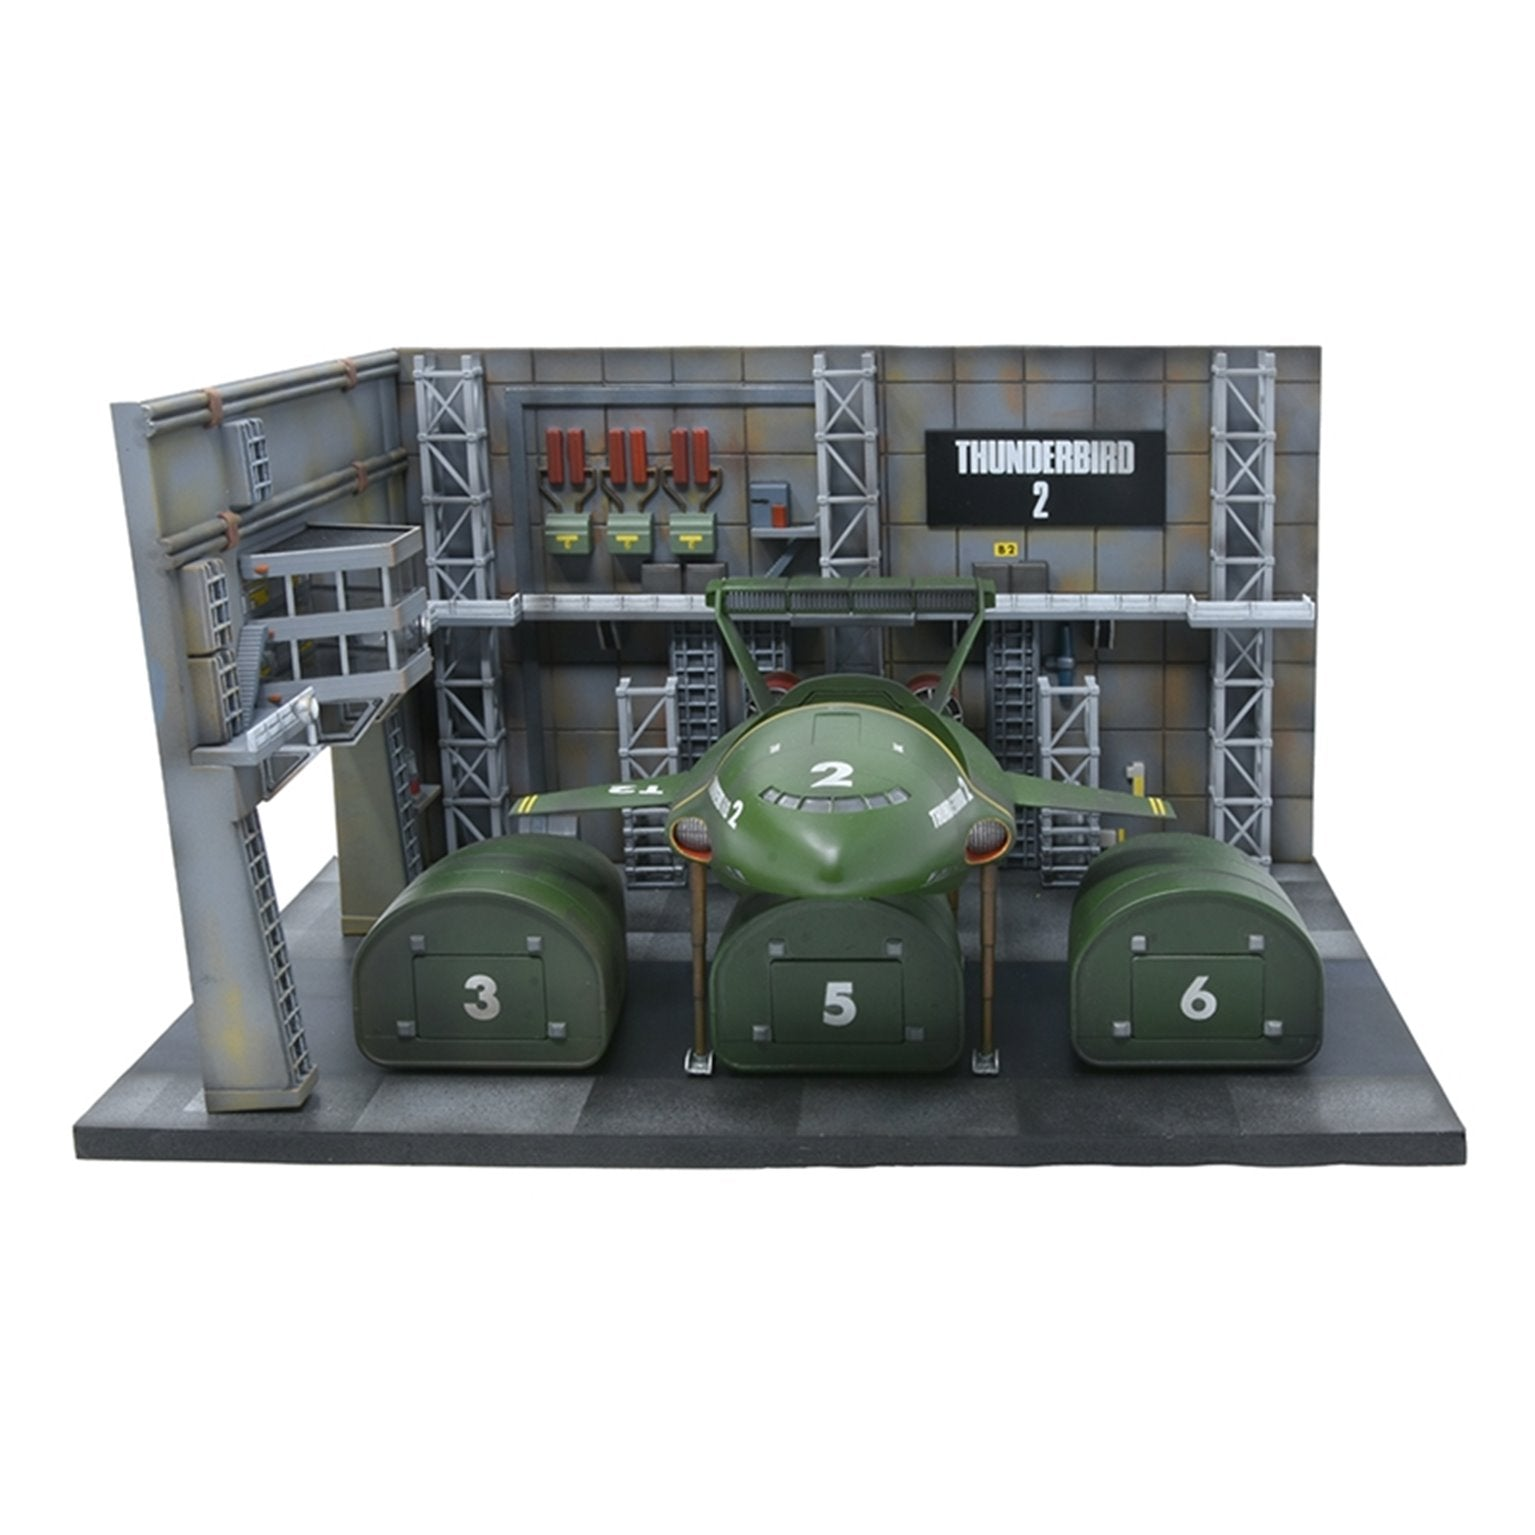 1:350 Thunderbird 2 Launch Bay Model Kit